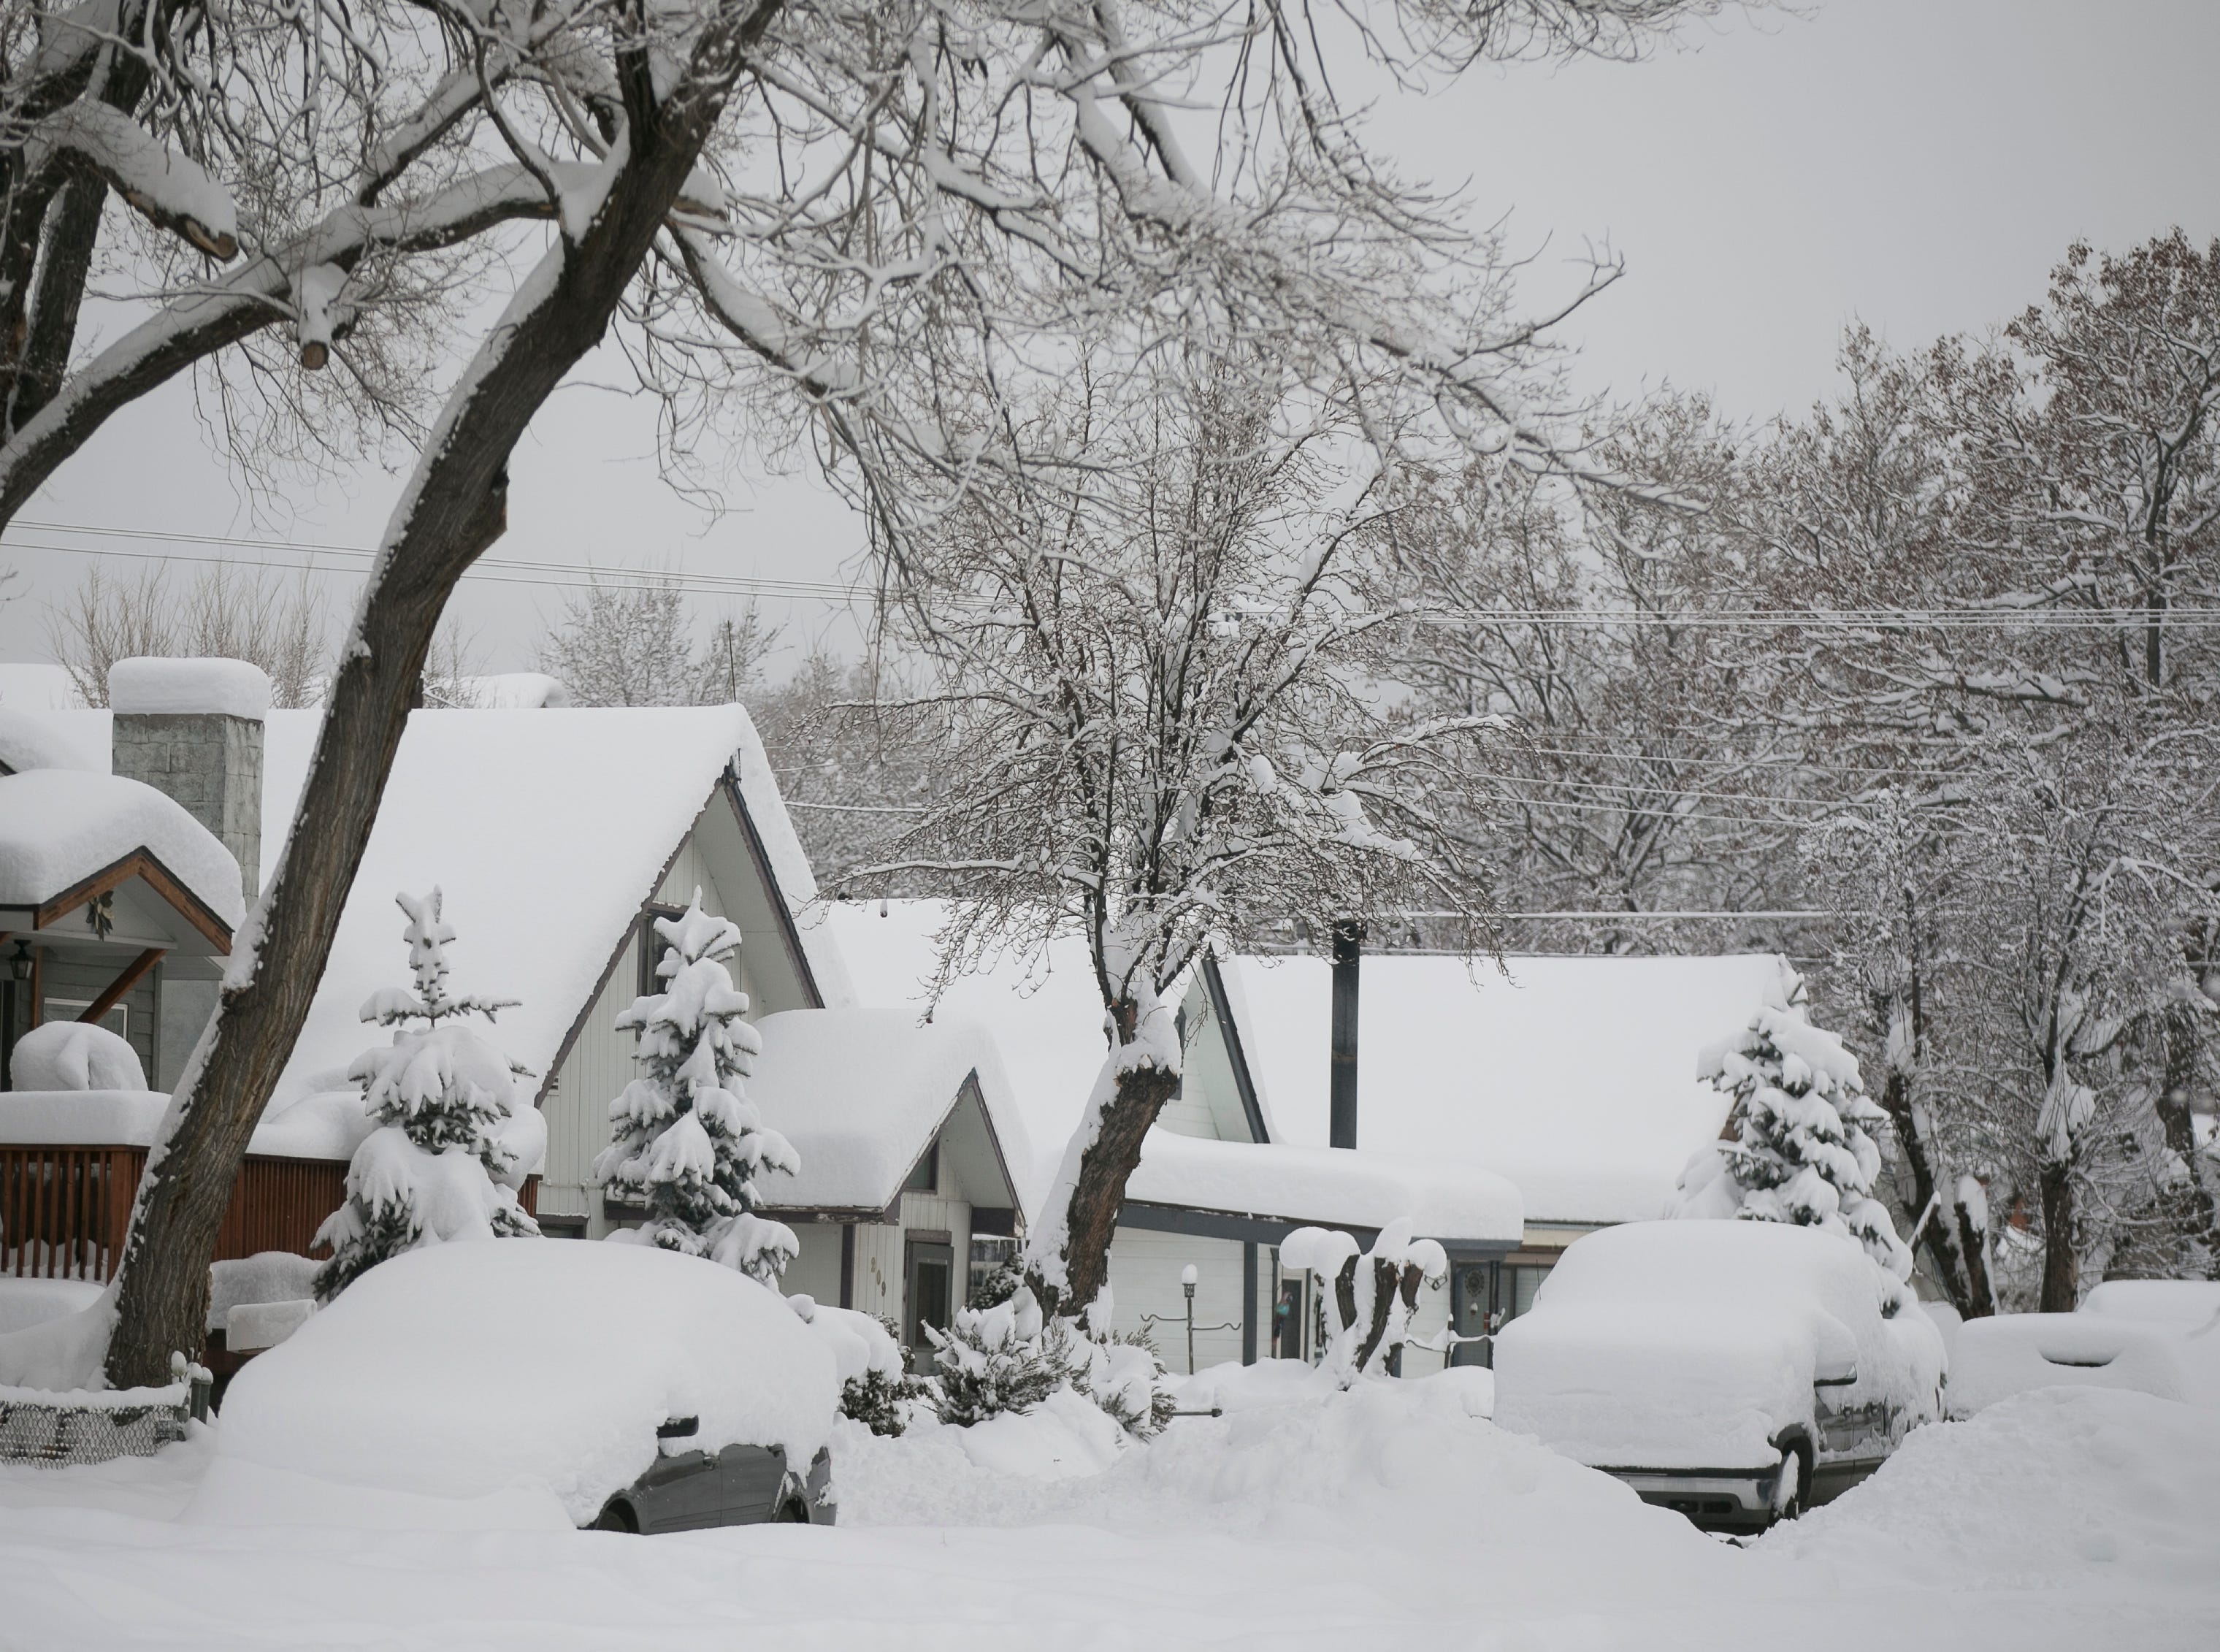 Snow blankets homes and cars the morning after a snow storm in Flagstaff on Feb. 22, 2019. The day before, a snow storm set the record for the most amount of snowfall in a day in Flagstaff